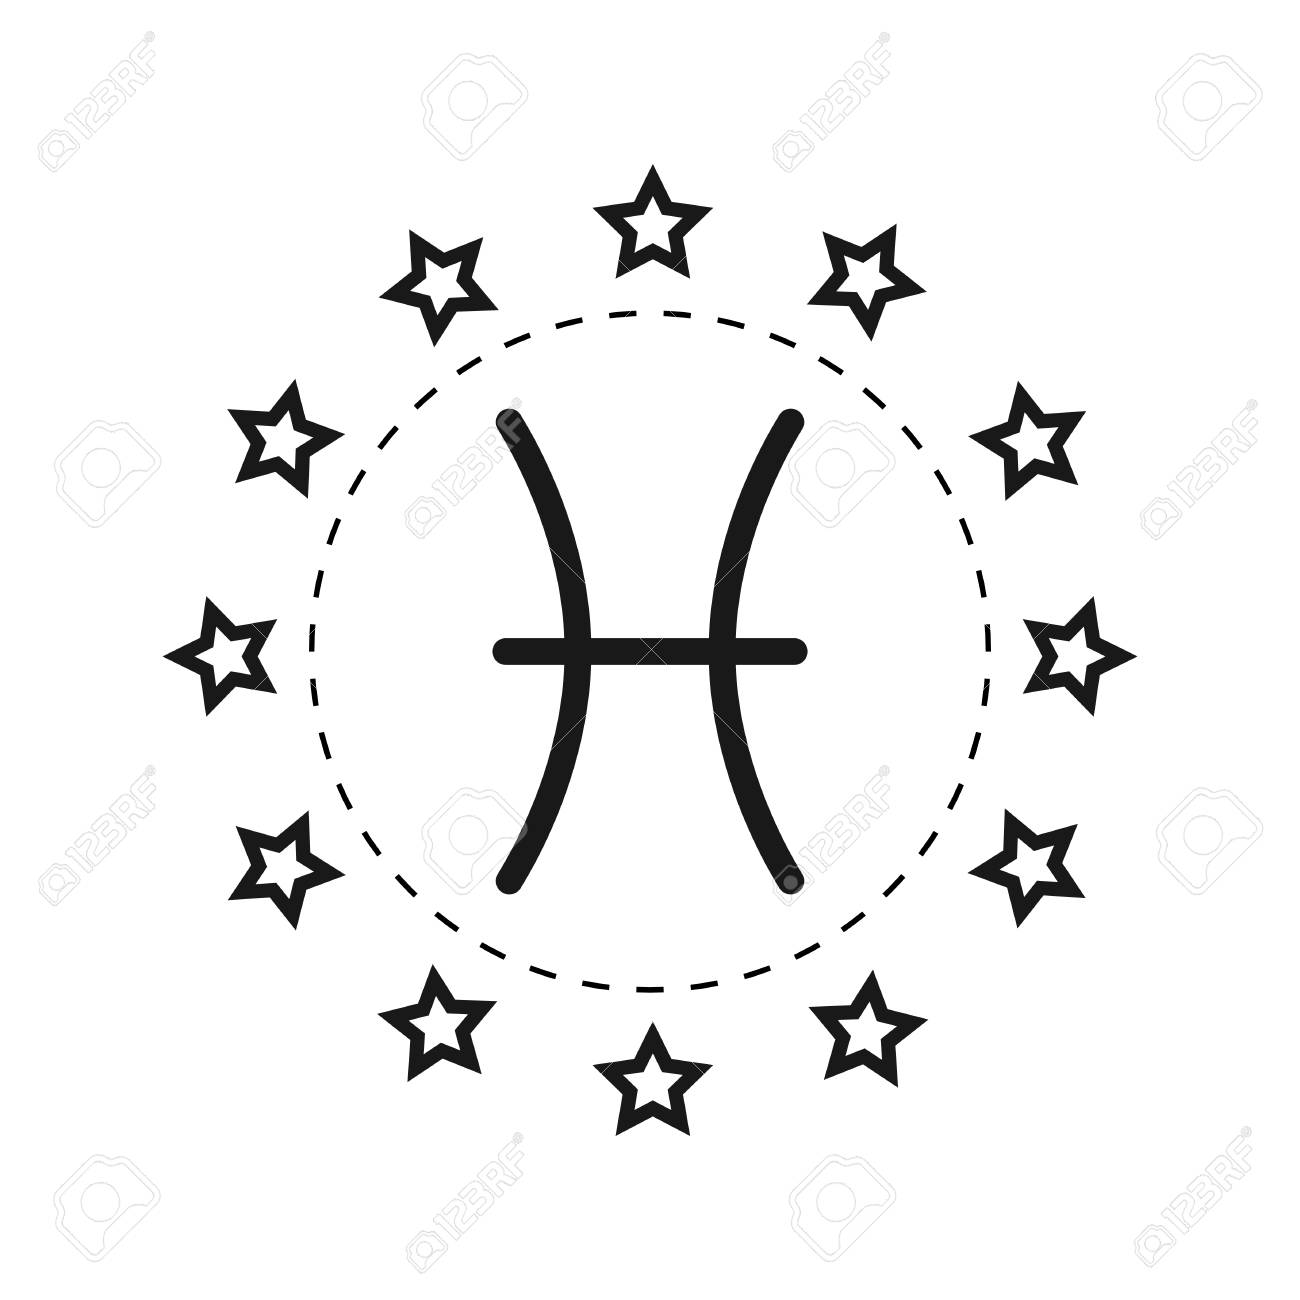 Pisces Sign Of The Zodiac Flat Symbol Horoscope And Predictions Vector Object For